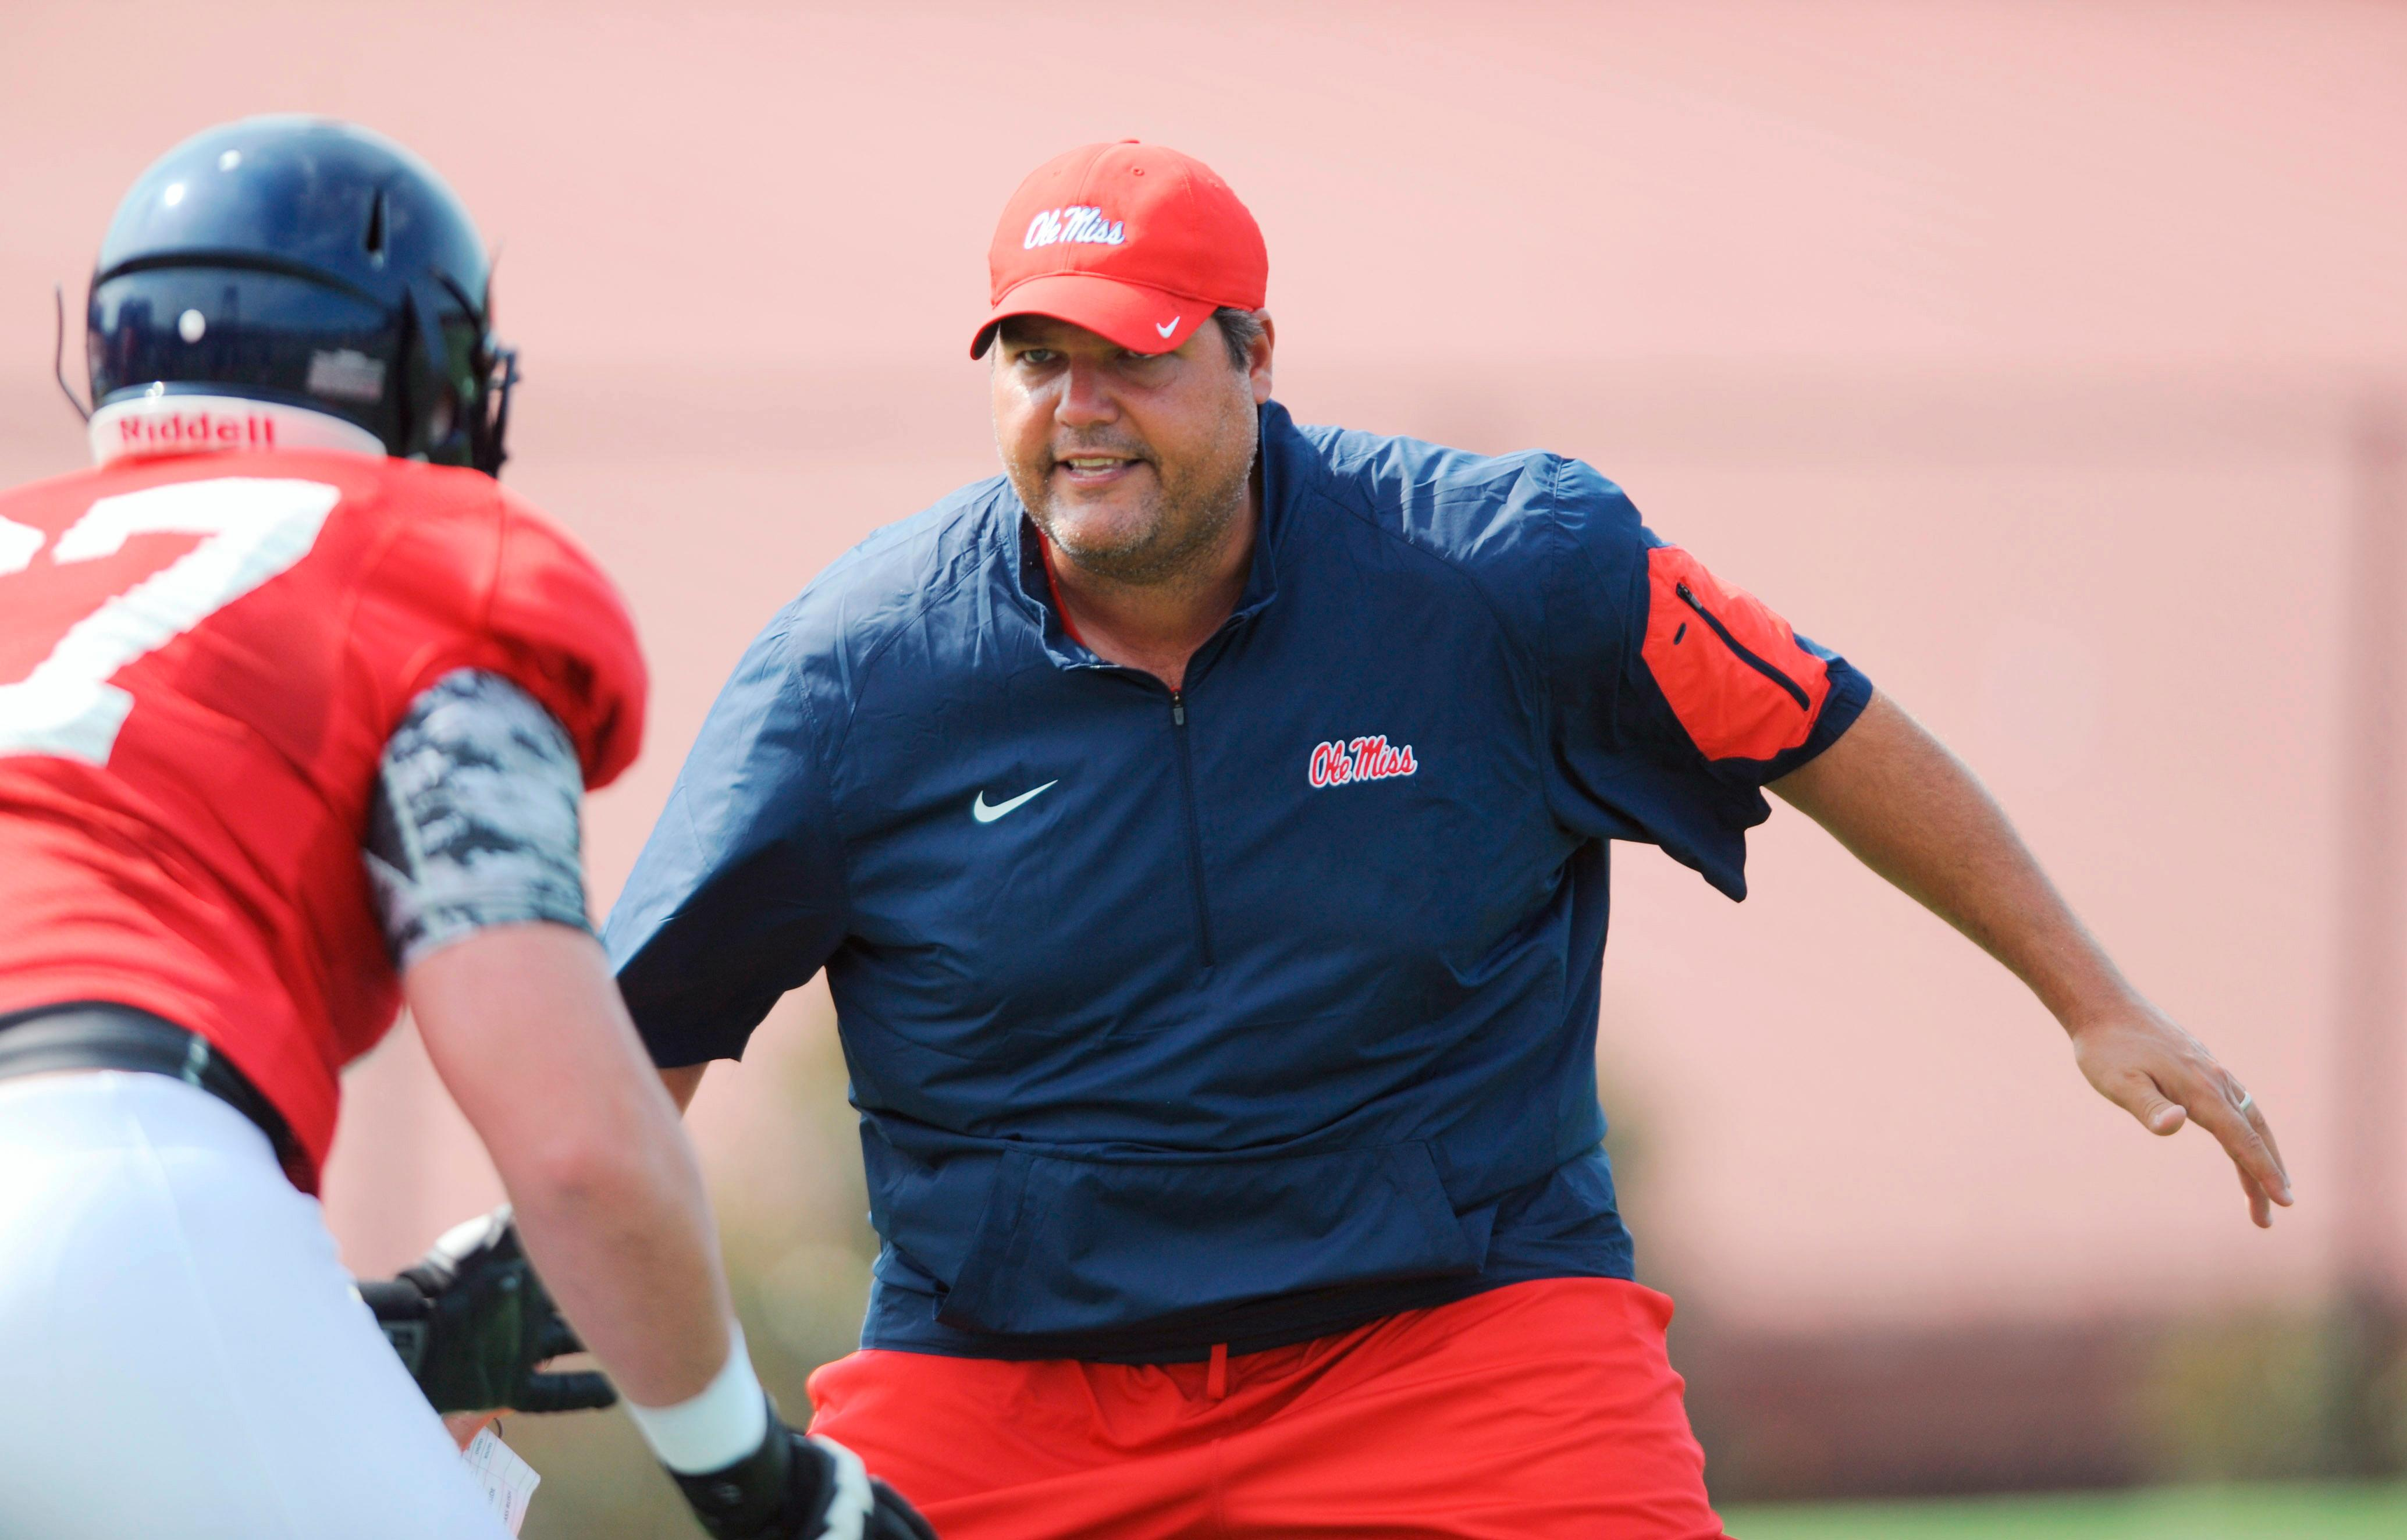 FILE - In this Aug. 10, 2015, file photo, Mississippi offensive line coach Matt Luke works on a drill with linemen during NCAA college football practice in Oxford, Miss. Mississippi coach Hugh Freeze has resigned after five seasons, bringing a stunning end to a once-promising tenure. The school confirmed Freeze's resignation in a release Thursday night, July 20, 2017. Luke has been named the interim coach. (Bruce Newman/The Oxford Eagle via AP, File)